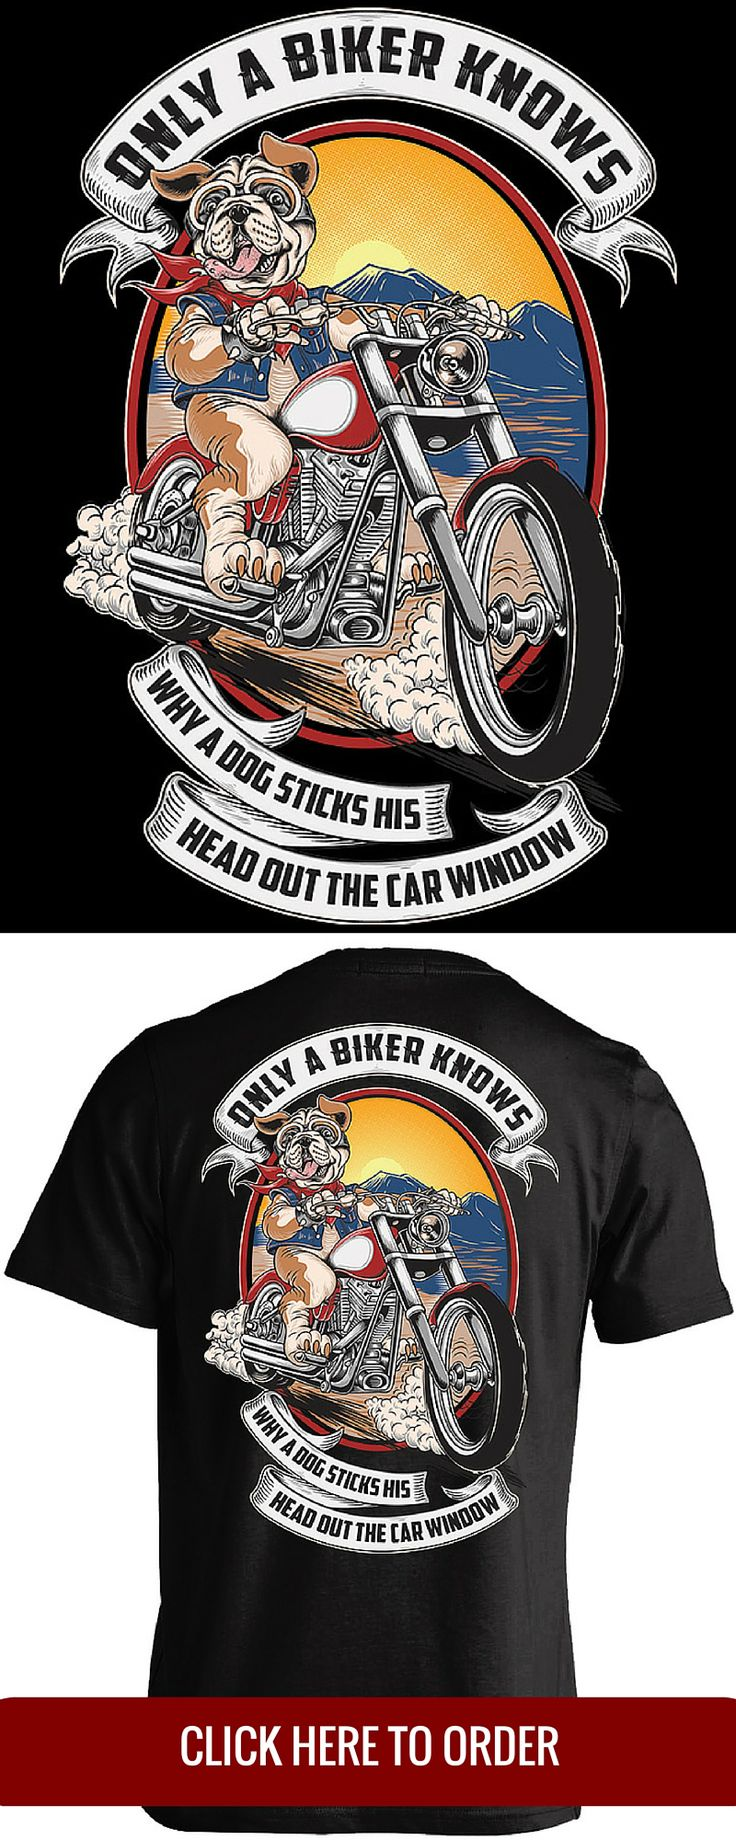 Harley funny biker quotes bar hopper challenge com - Only A Biker Knows Why A Dog Sticks His Head Out